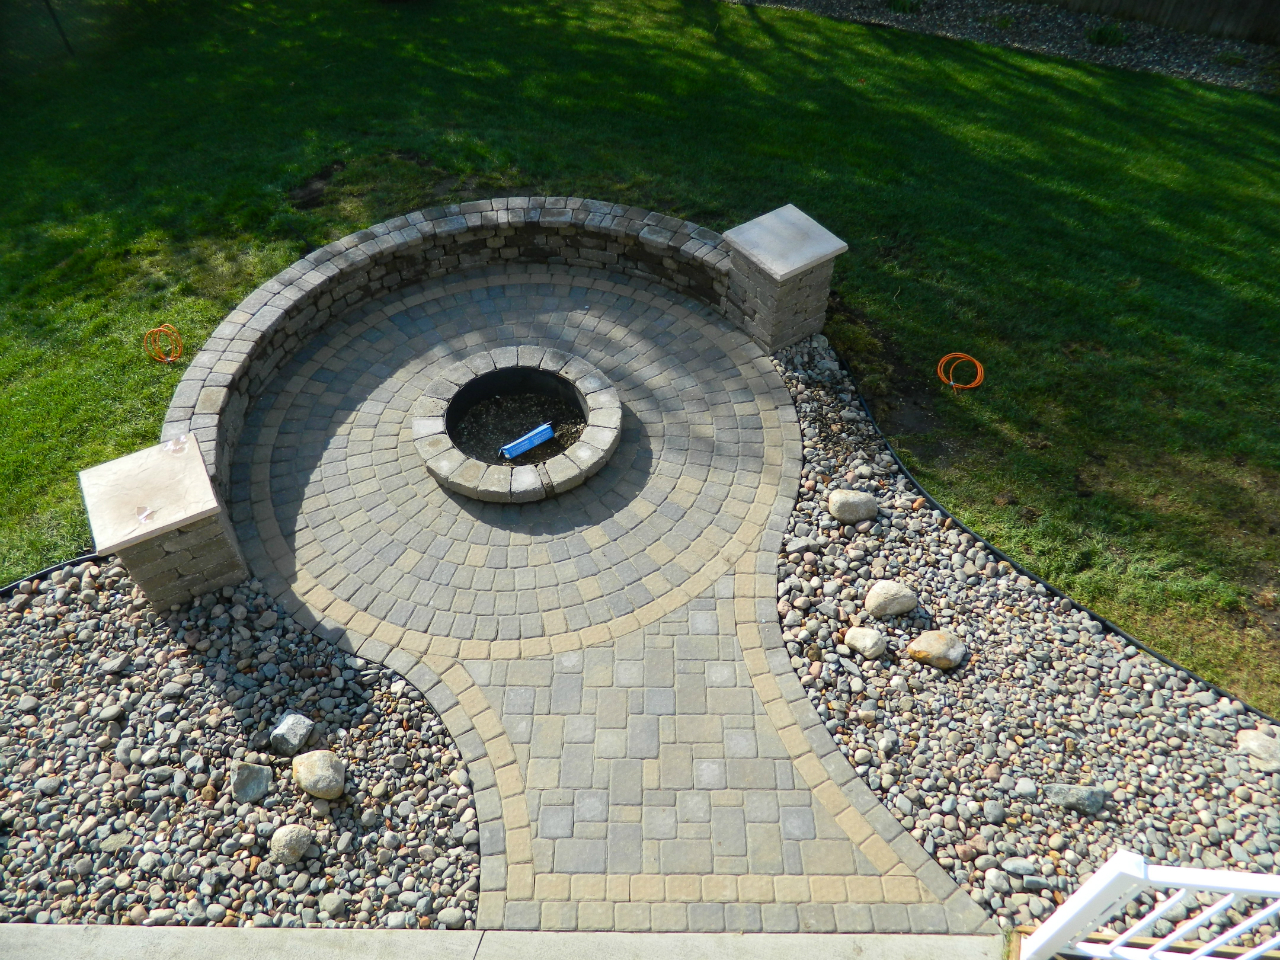 Stone fire pit ideas Rosemount, MN | Devine Design Hardscapes on Pavers Patio With Fire Pit id=52417